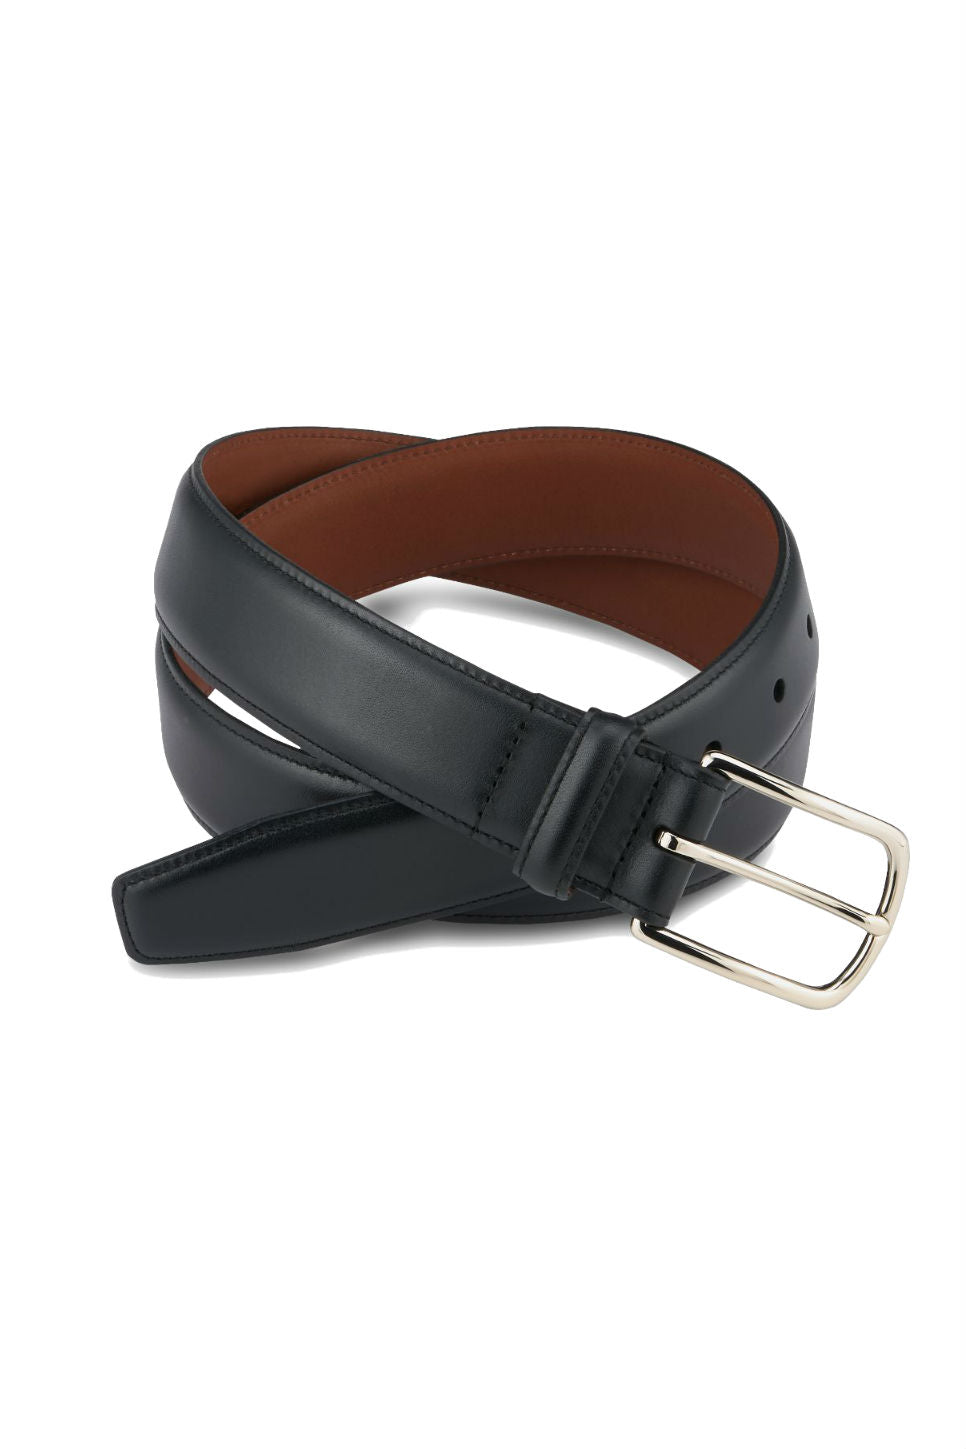 Red Wing Heritage - Featherstone Leather Belt - Black